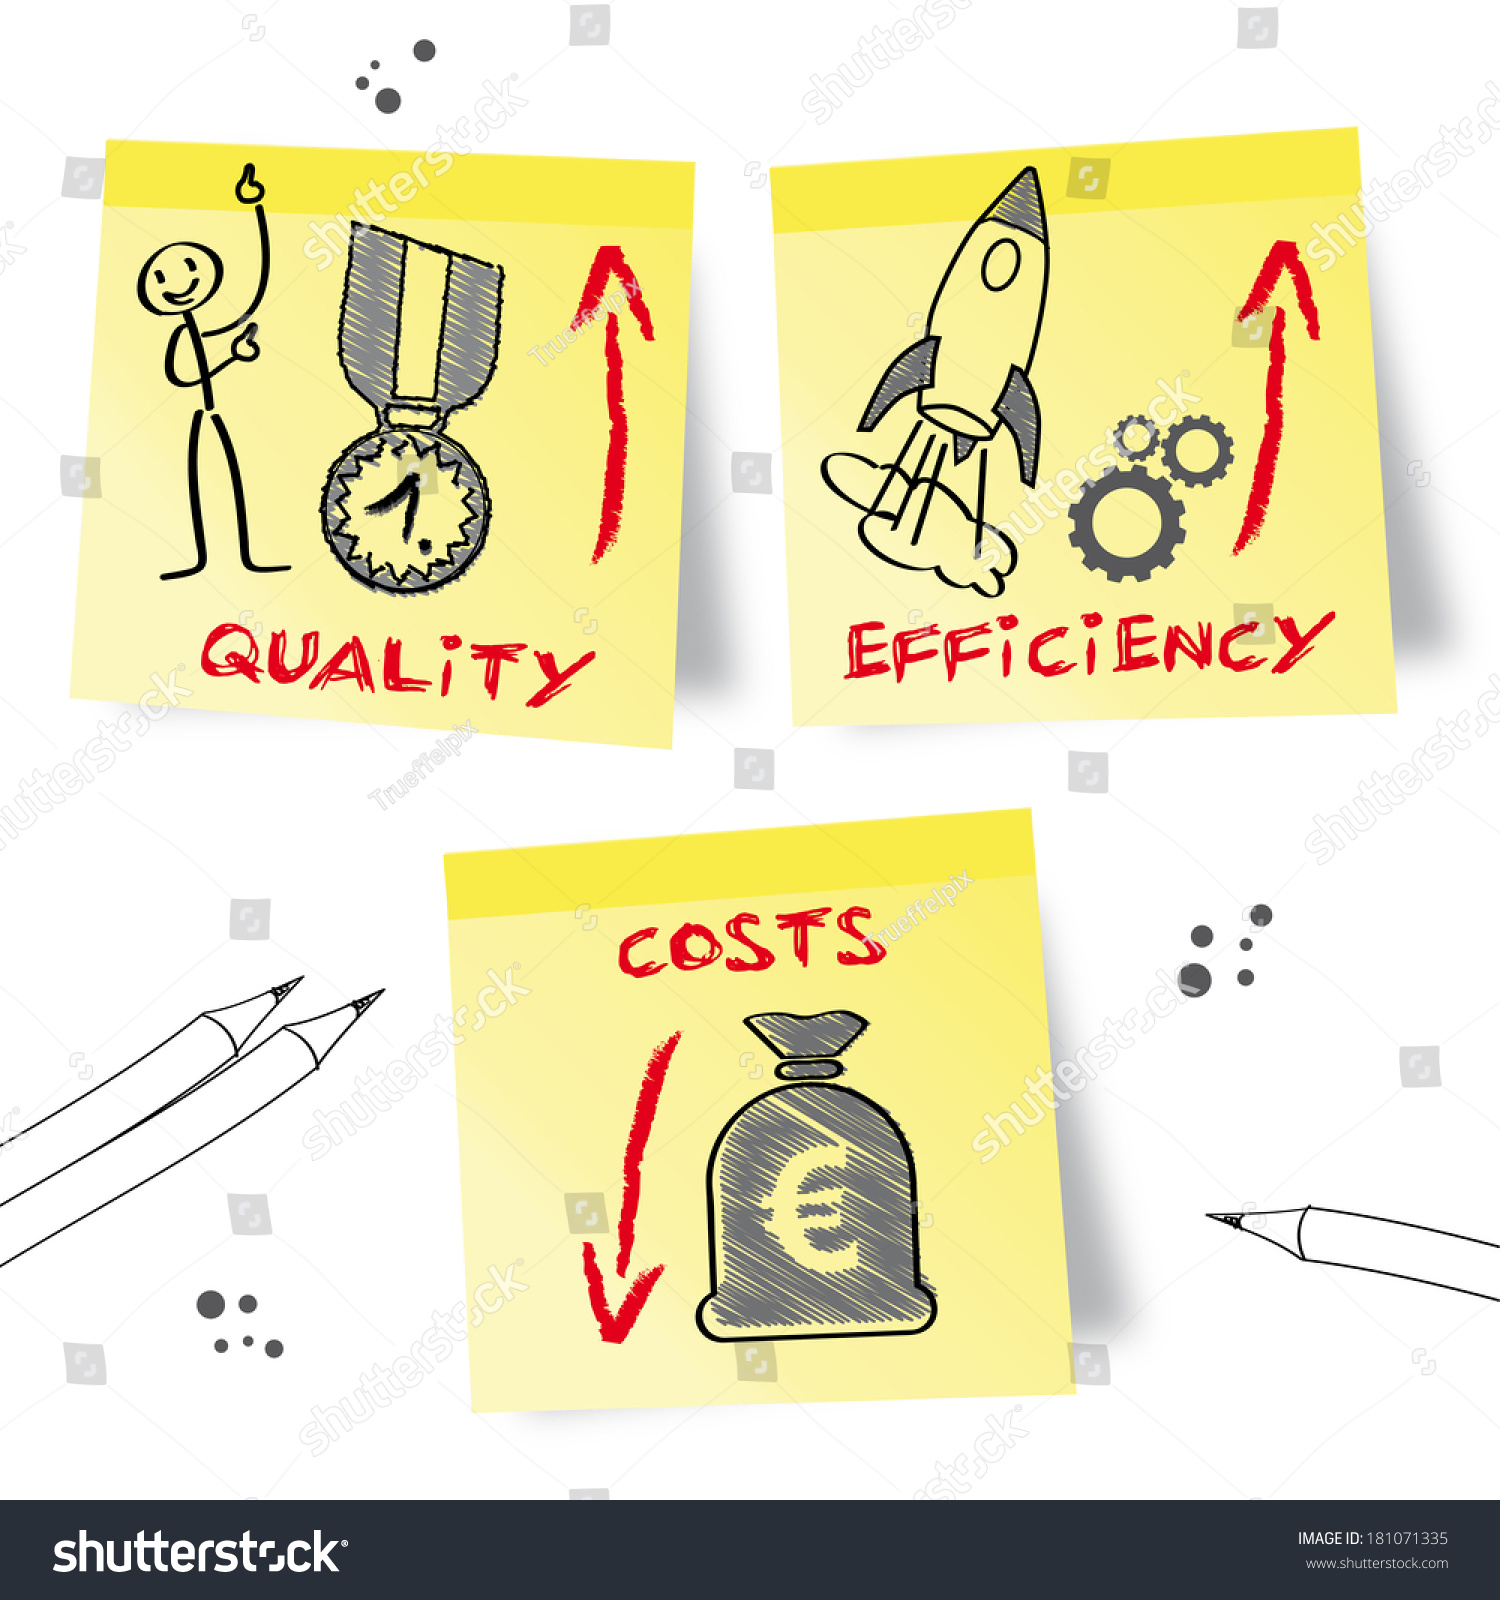 economic efficiency Quizlet provides economic efficiency activities, flashcards and games start learning today for free.